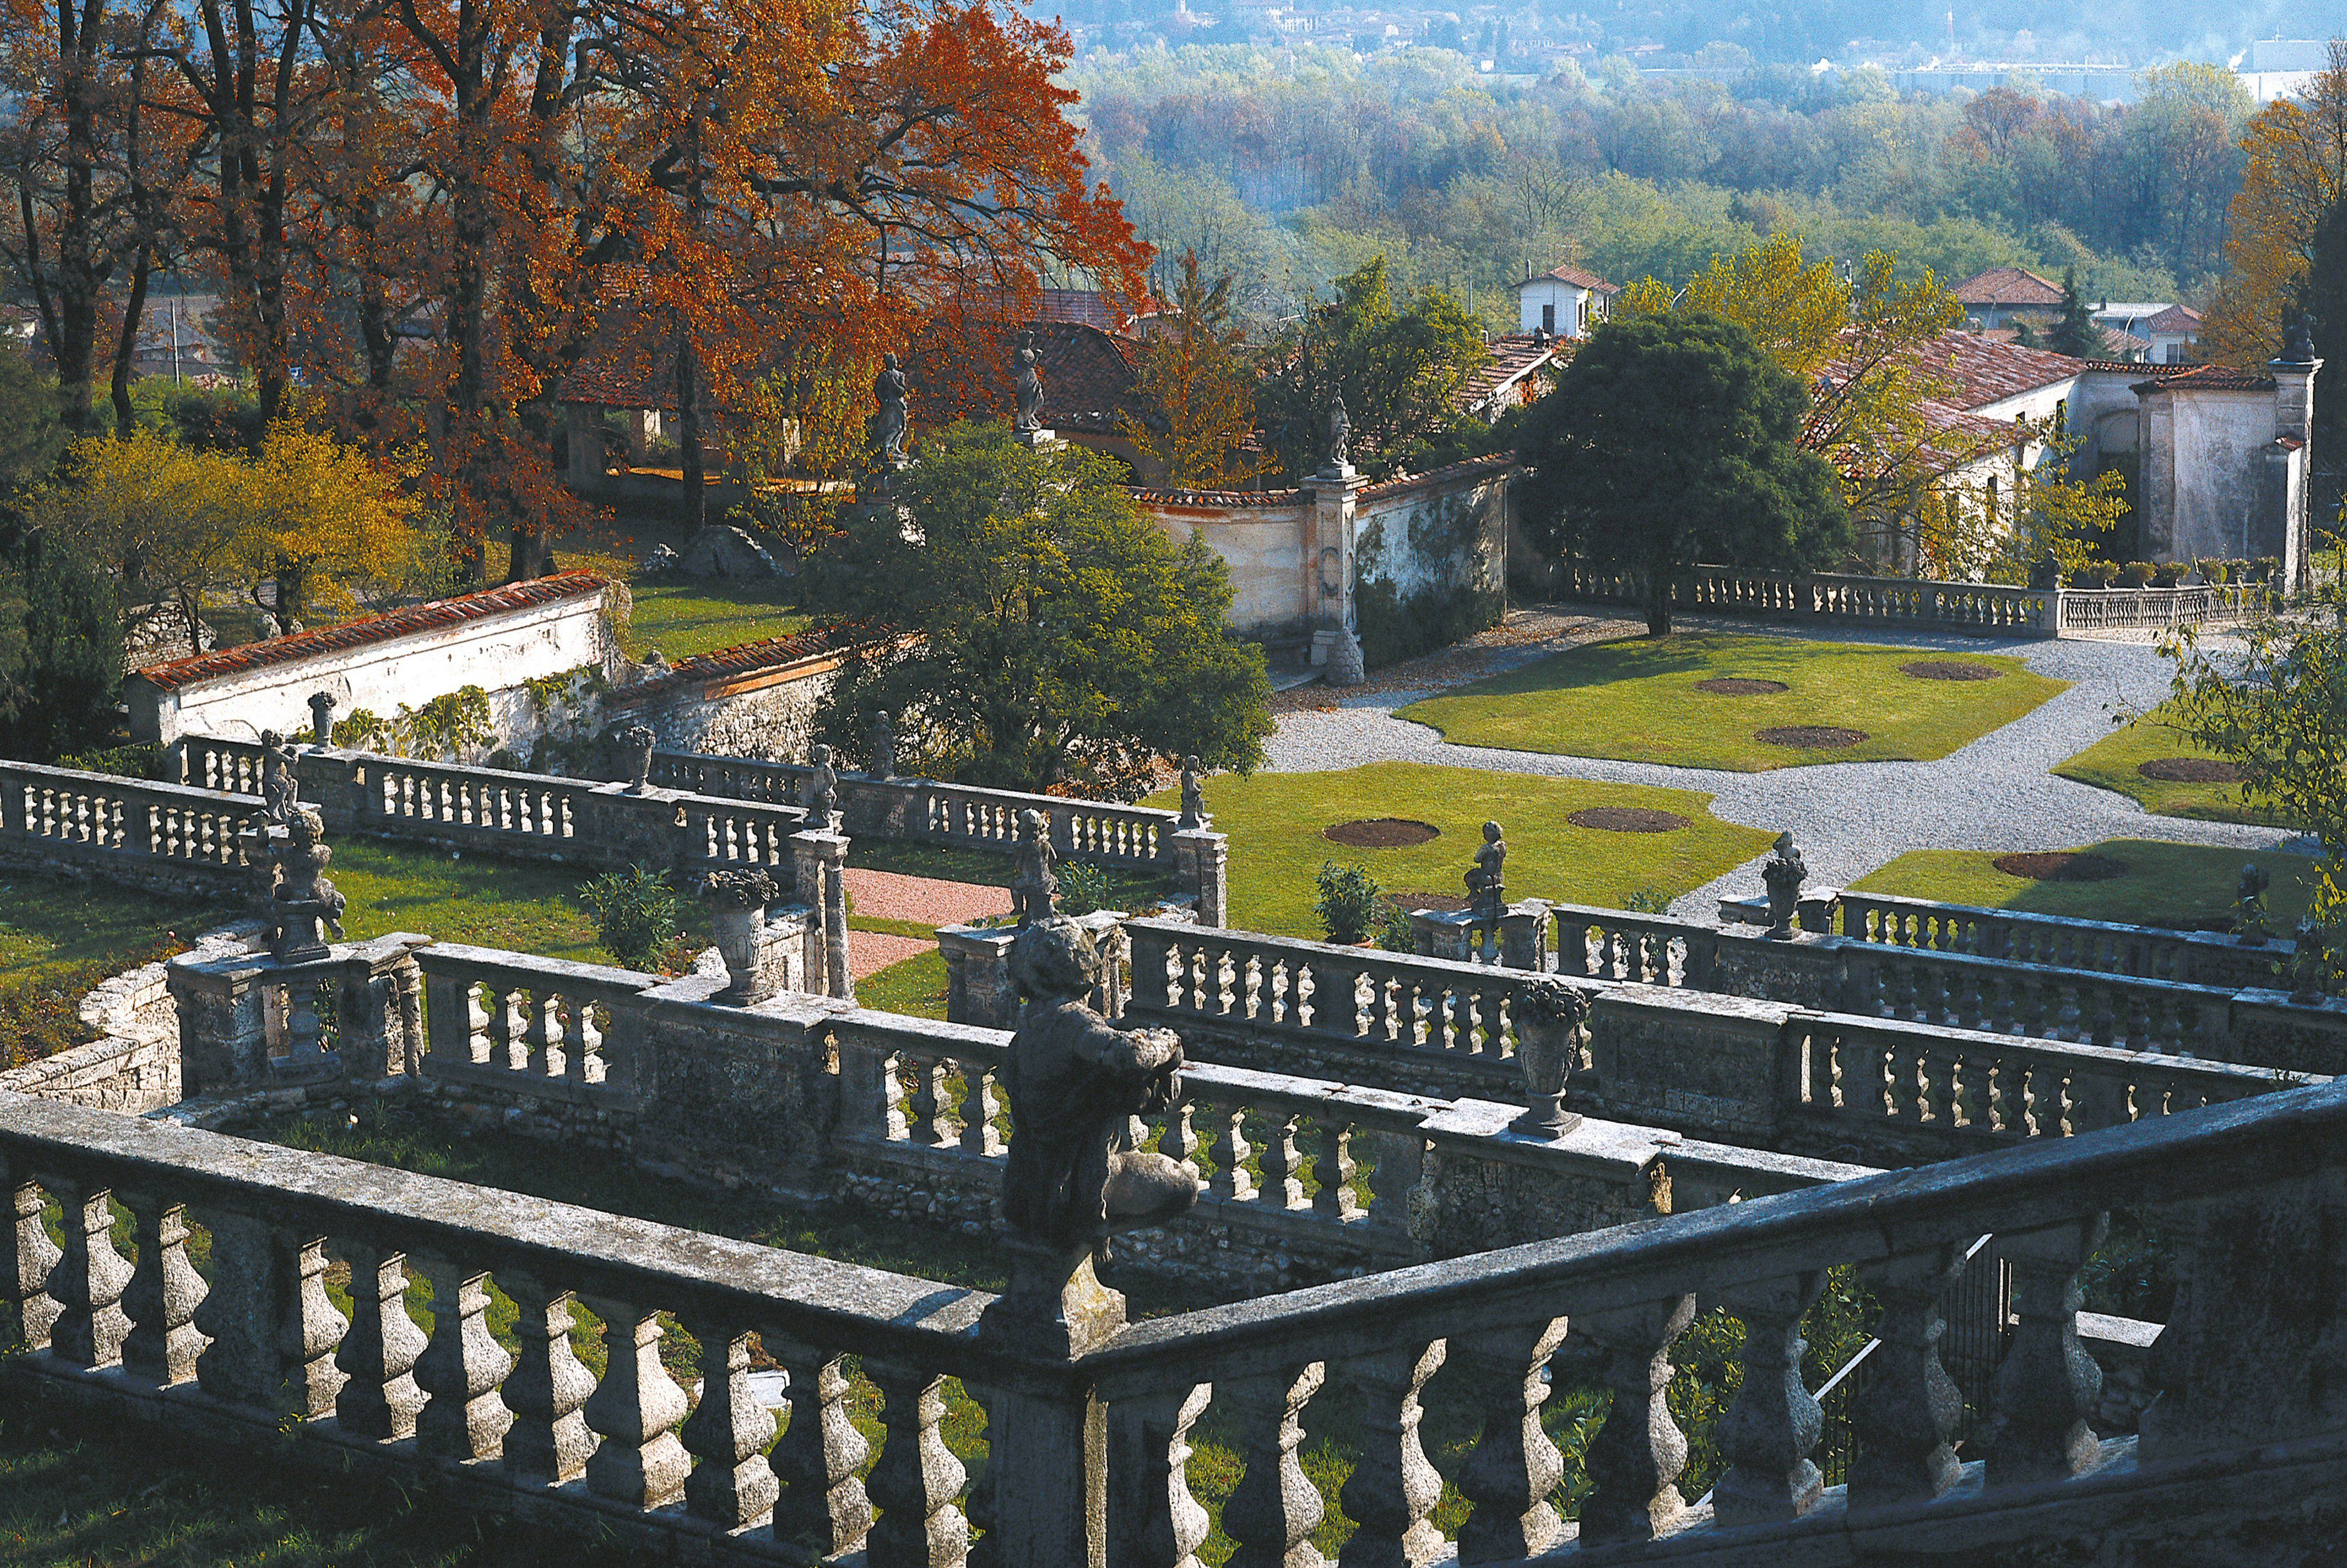 Terraced Italian Gardens added in the 18th century to a 16th century villa